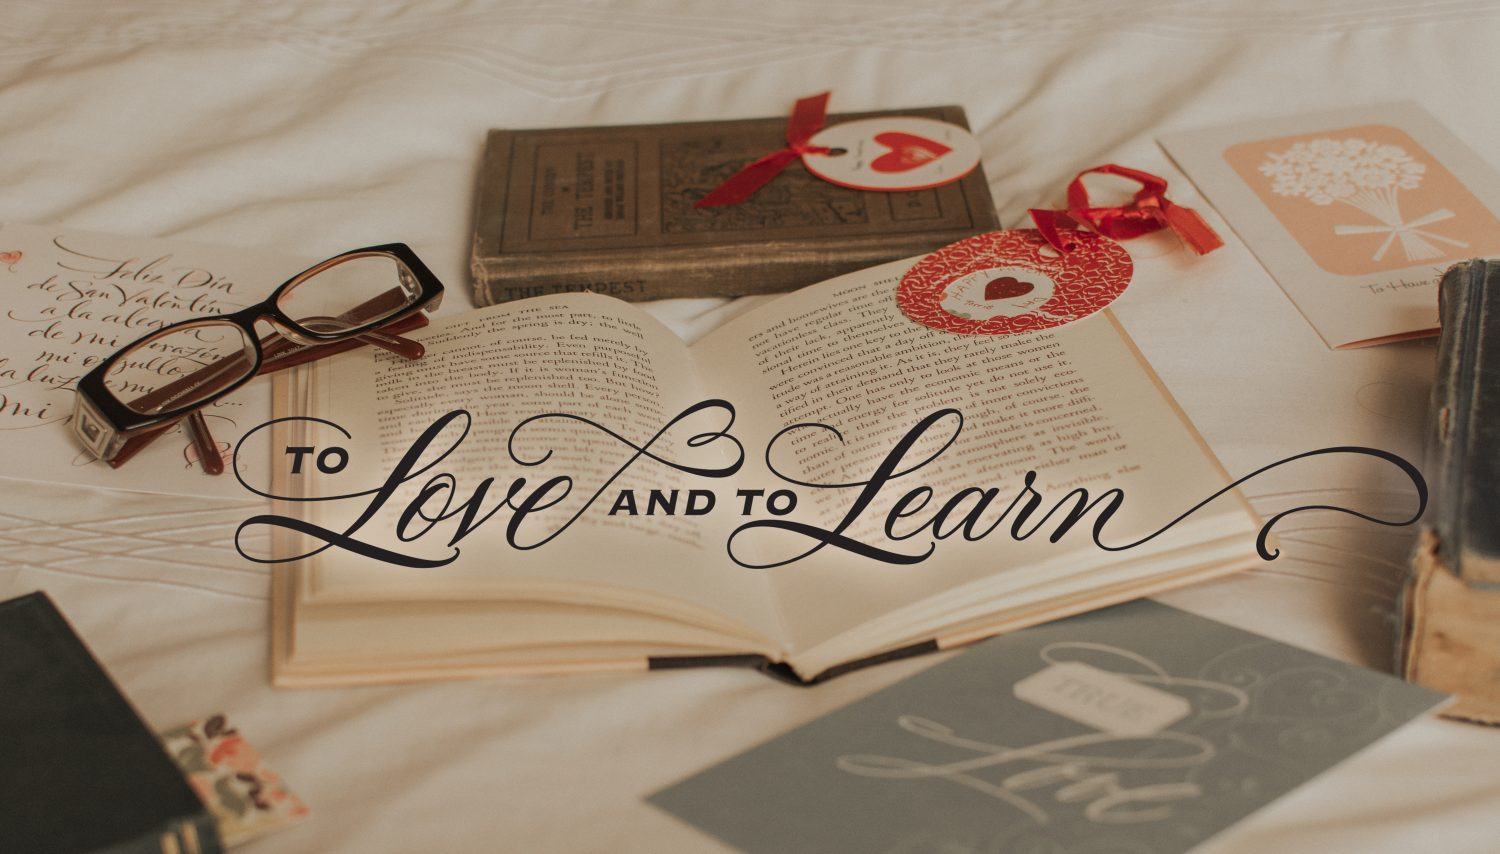 To Love and To Learn